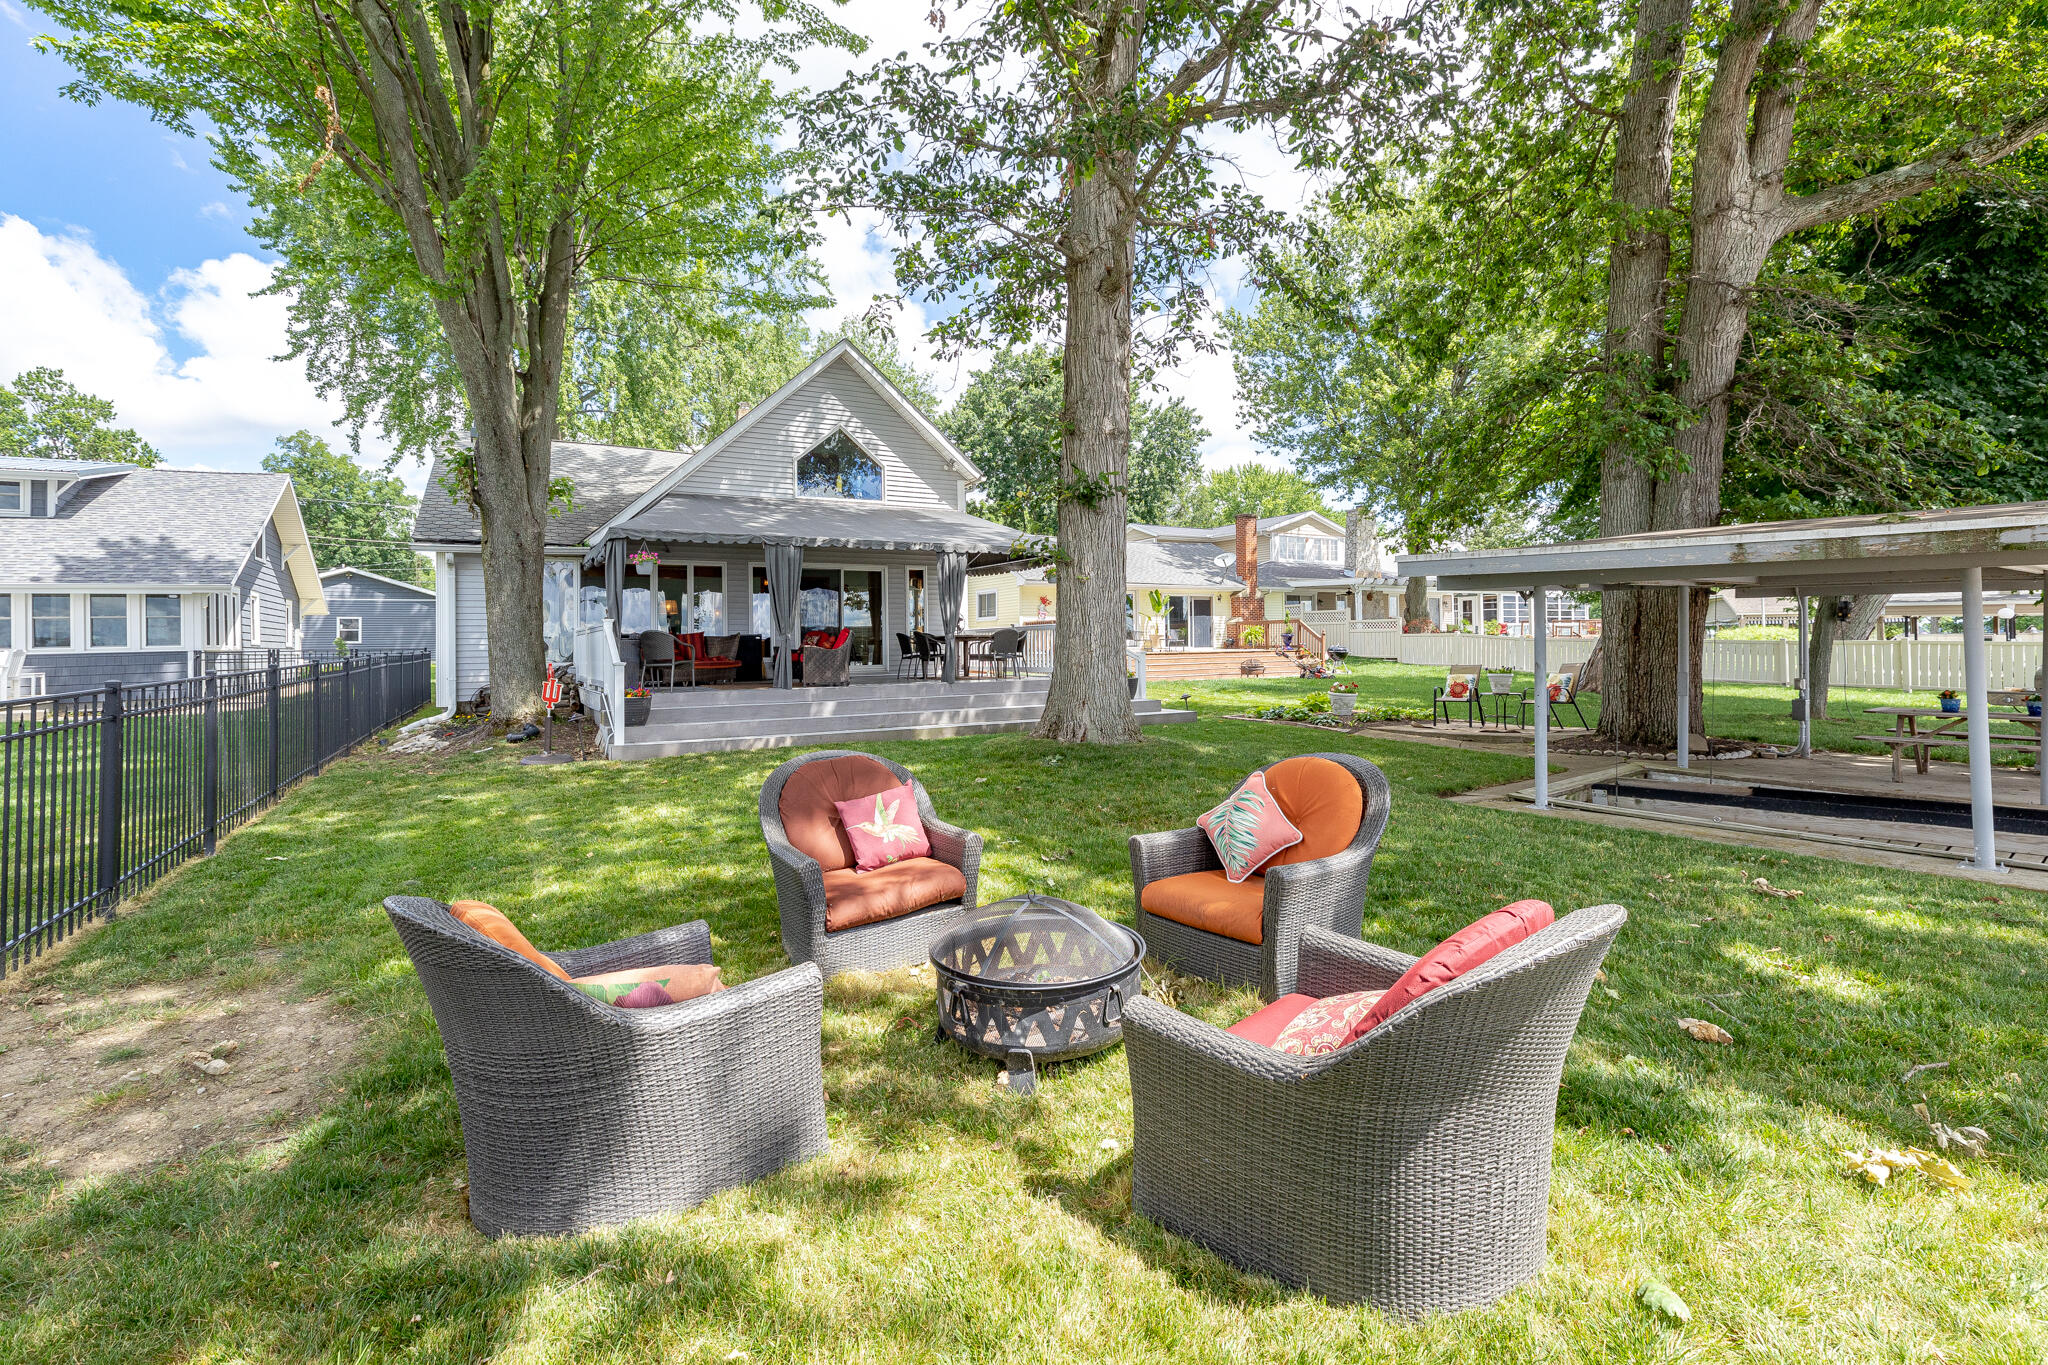 Photo 1 for 8751 Chautauqua Blvd Lakeview, OH 43331